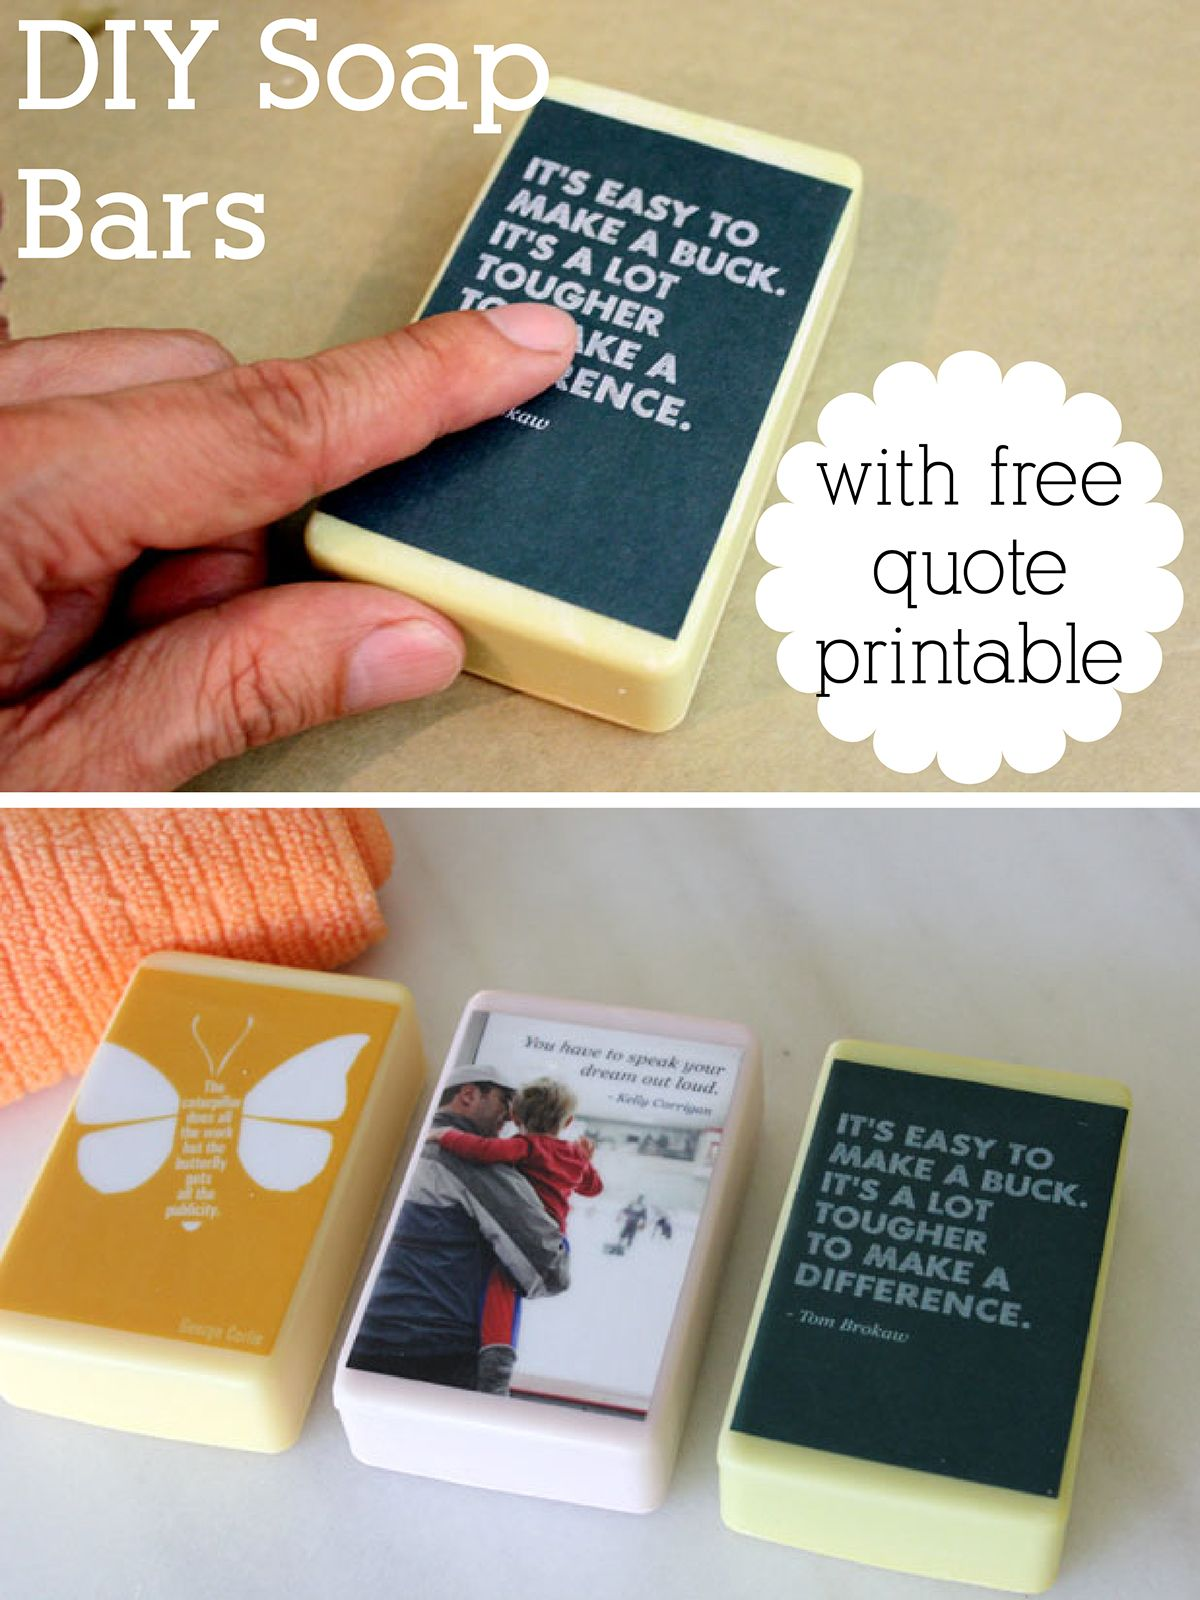 DIY Quoted Soap Bars make wonderful gifts! Free printables